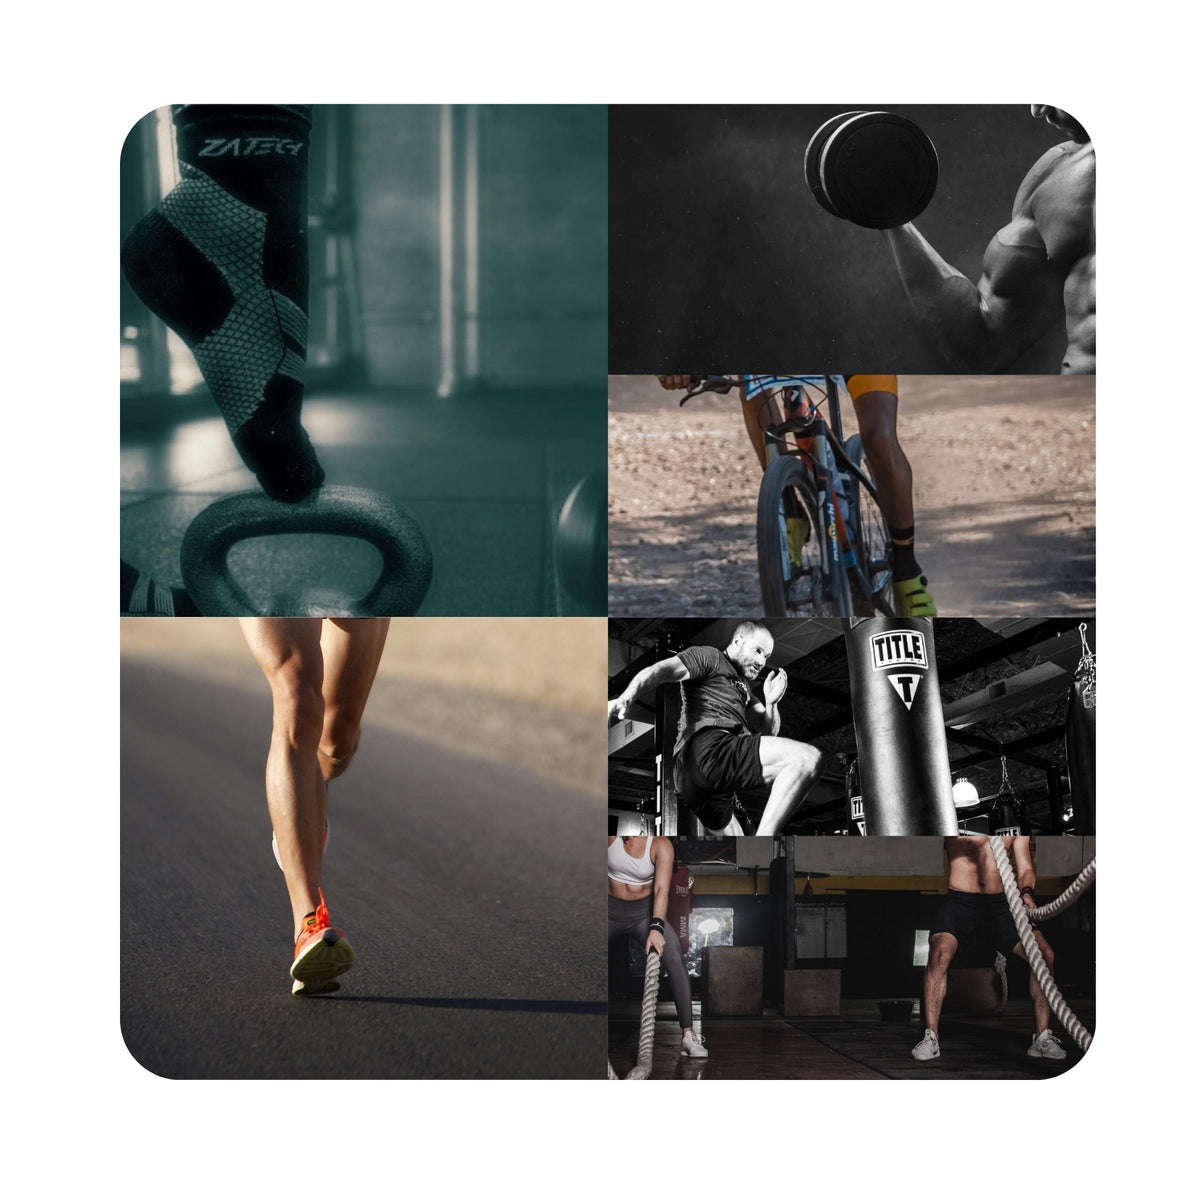 ZaTech® compression socks. Wholesome training and recovery. A collage of work out activities. ZaTech® compression socks can help boost performance and stamina and aid recovery. Kettlebell, man curling biceps, running, kickboxing and crossfit activities